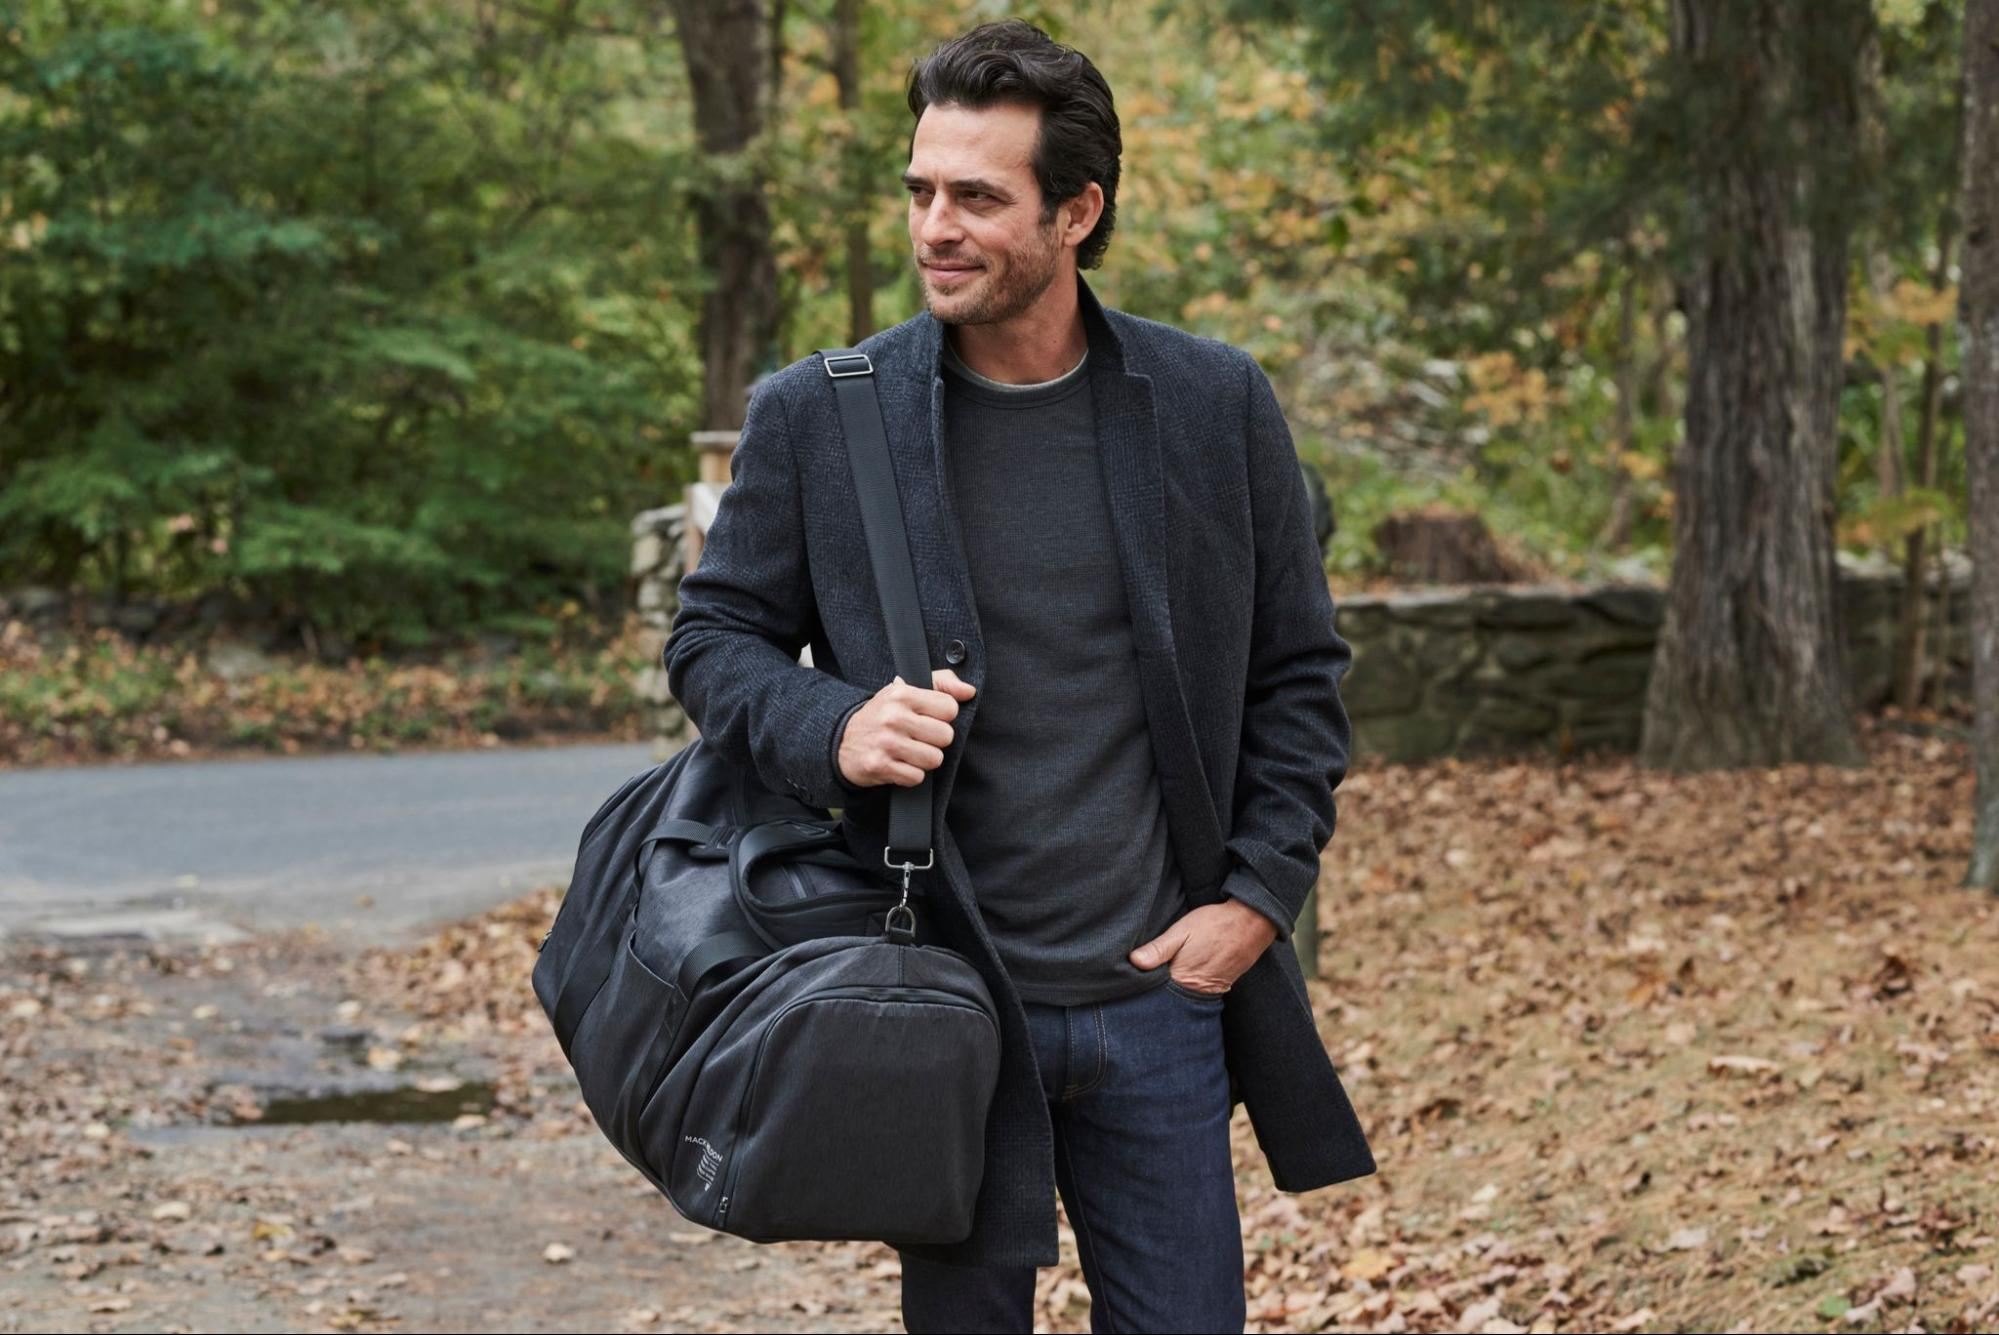 A model dressed in all gray, carrying the weekender tote by Mack Weldon.